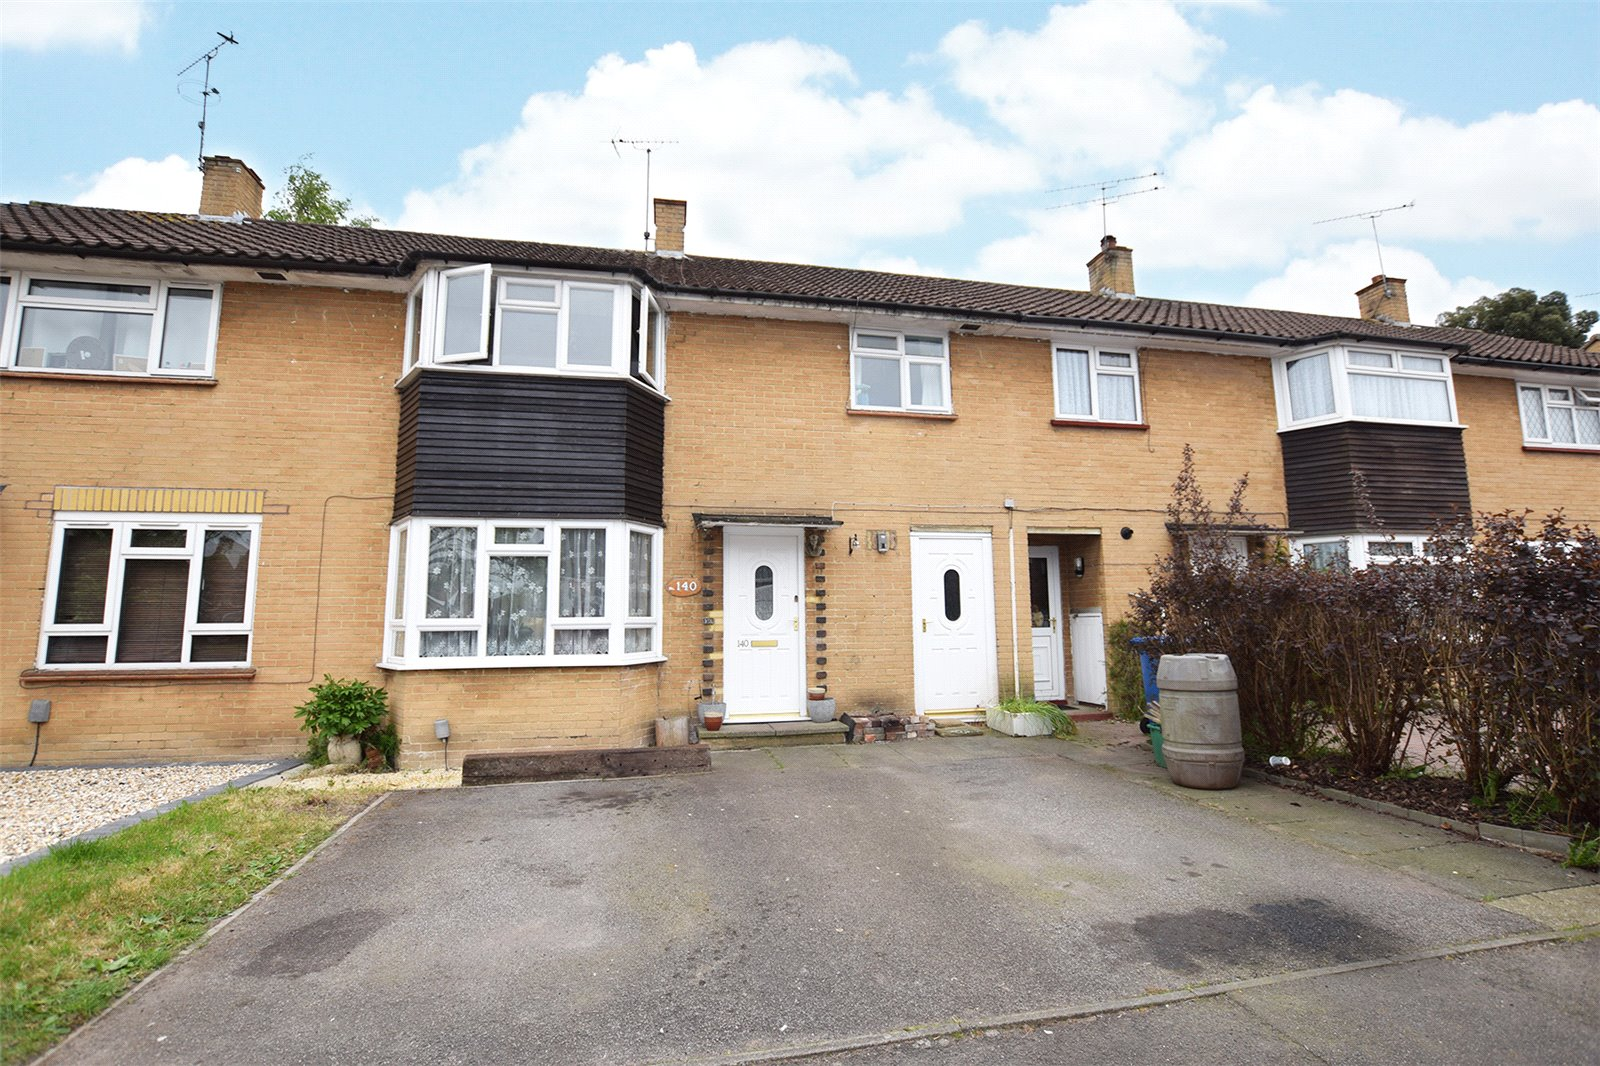 3 Bedrooms Terraced House for sale in Moordale Avenue, Bracknell, Berkshire, RG42